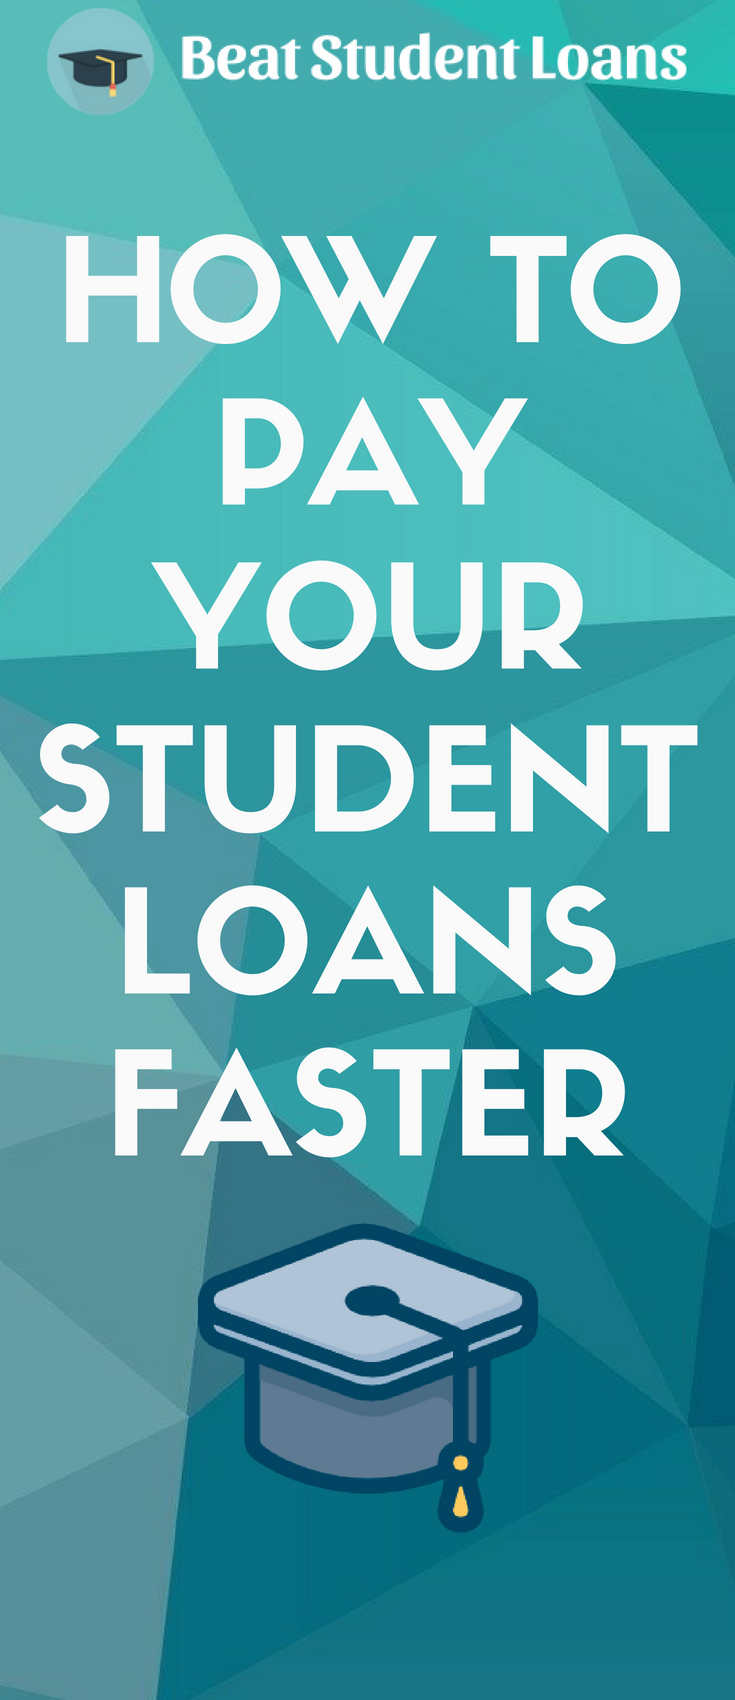 12 Strategies To Pay Off Student Loans Fast Reddit Beat Student Loans Student Loans Paying Off Student Loans Paying Student Loans